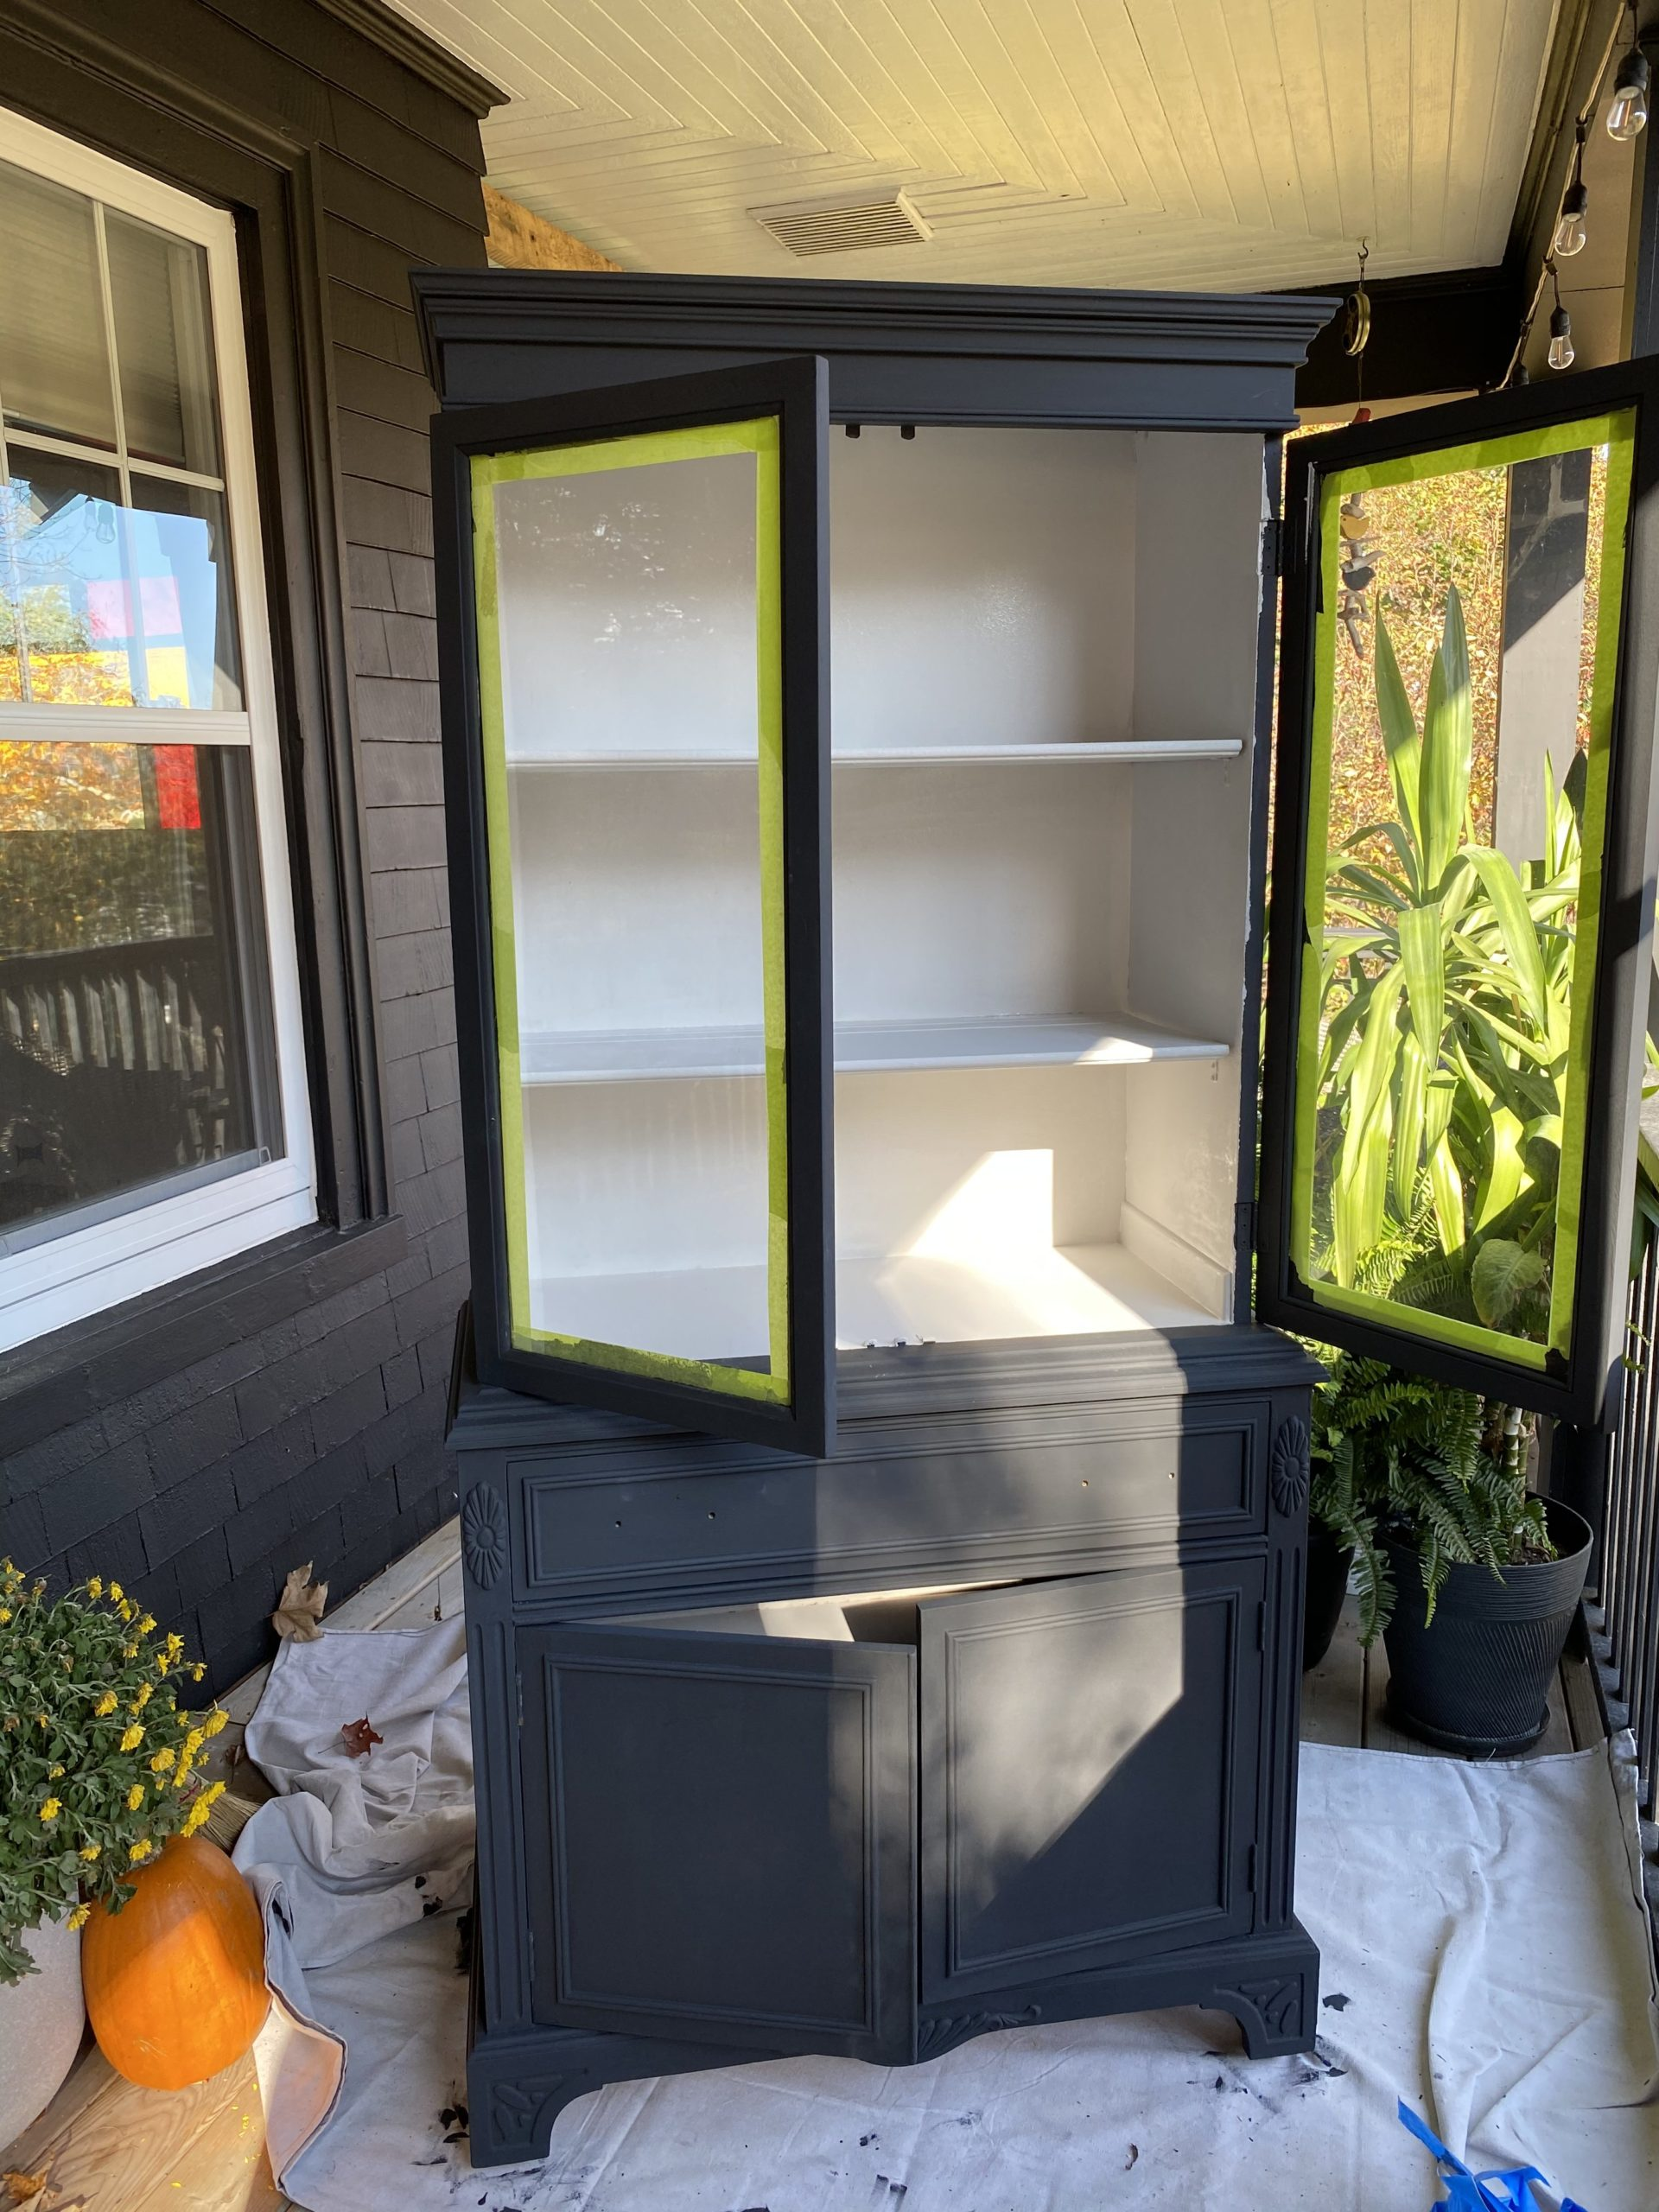 How to Refinish a China Cabinet For a Bathroom | the wild decoelis | matte black antique medicine cabinet with white grey interior in bathroom for storage with baskets and towels black clawfoot tub, vintage rug